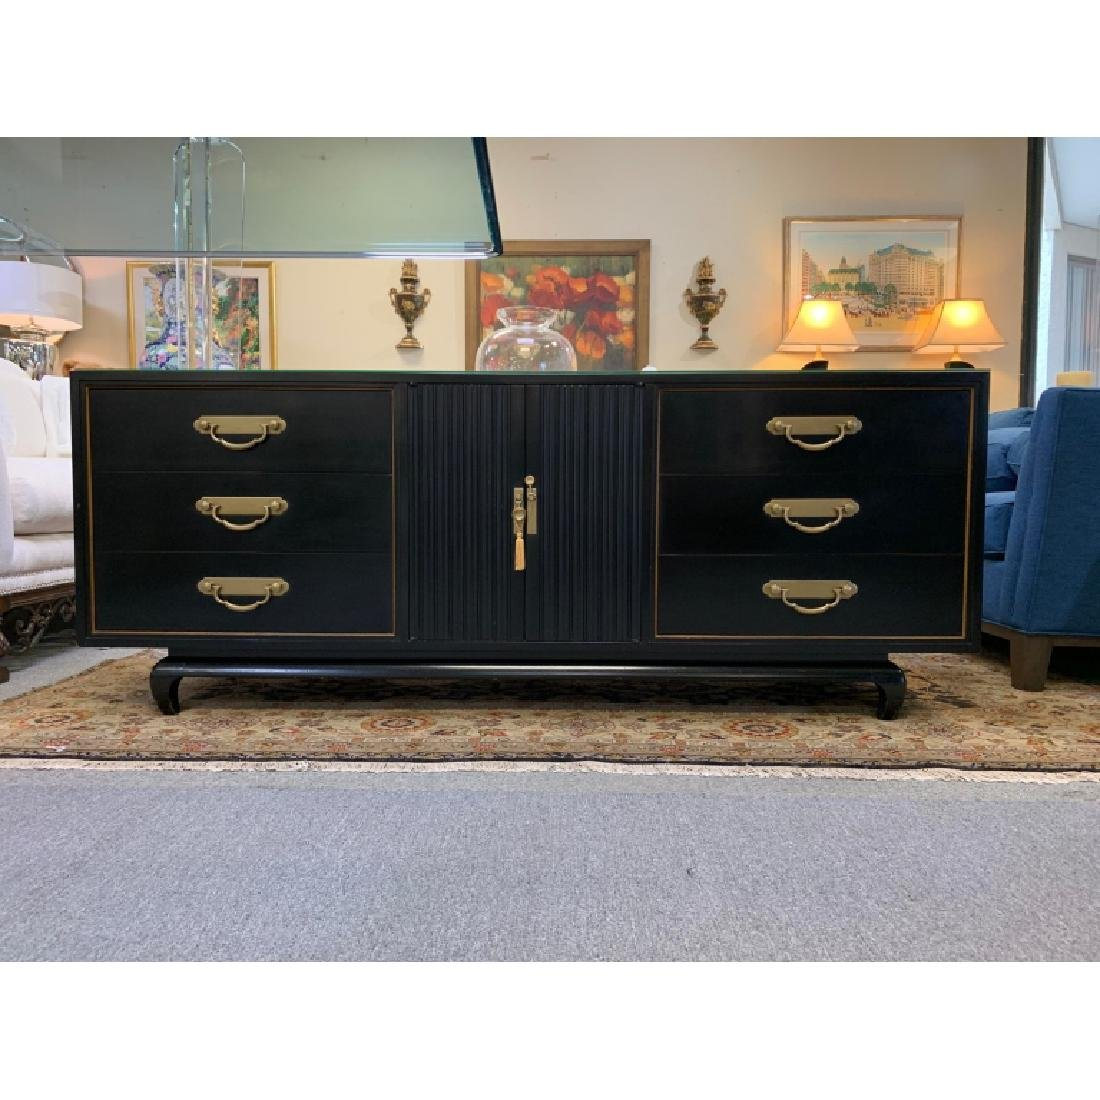 AMERICAN BY MARTINSVILLE CHINOISERIE CREDENZA - 2